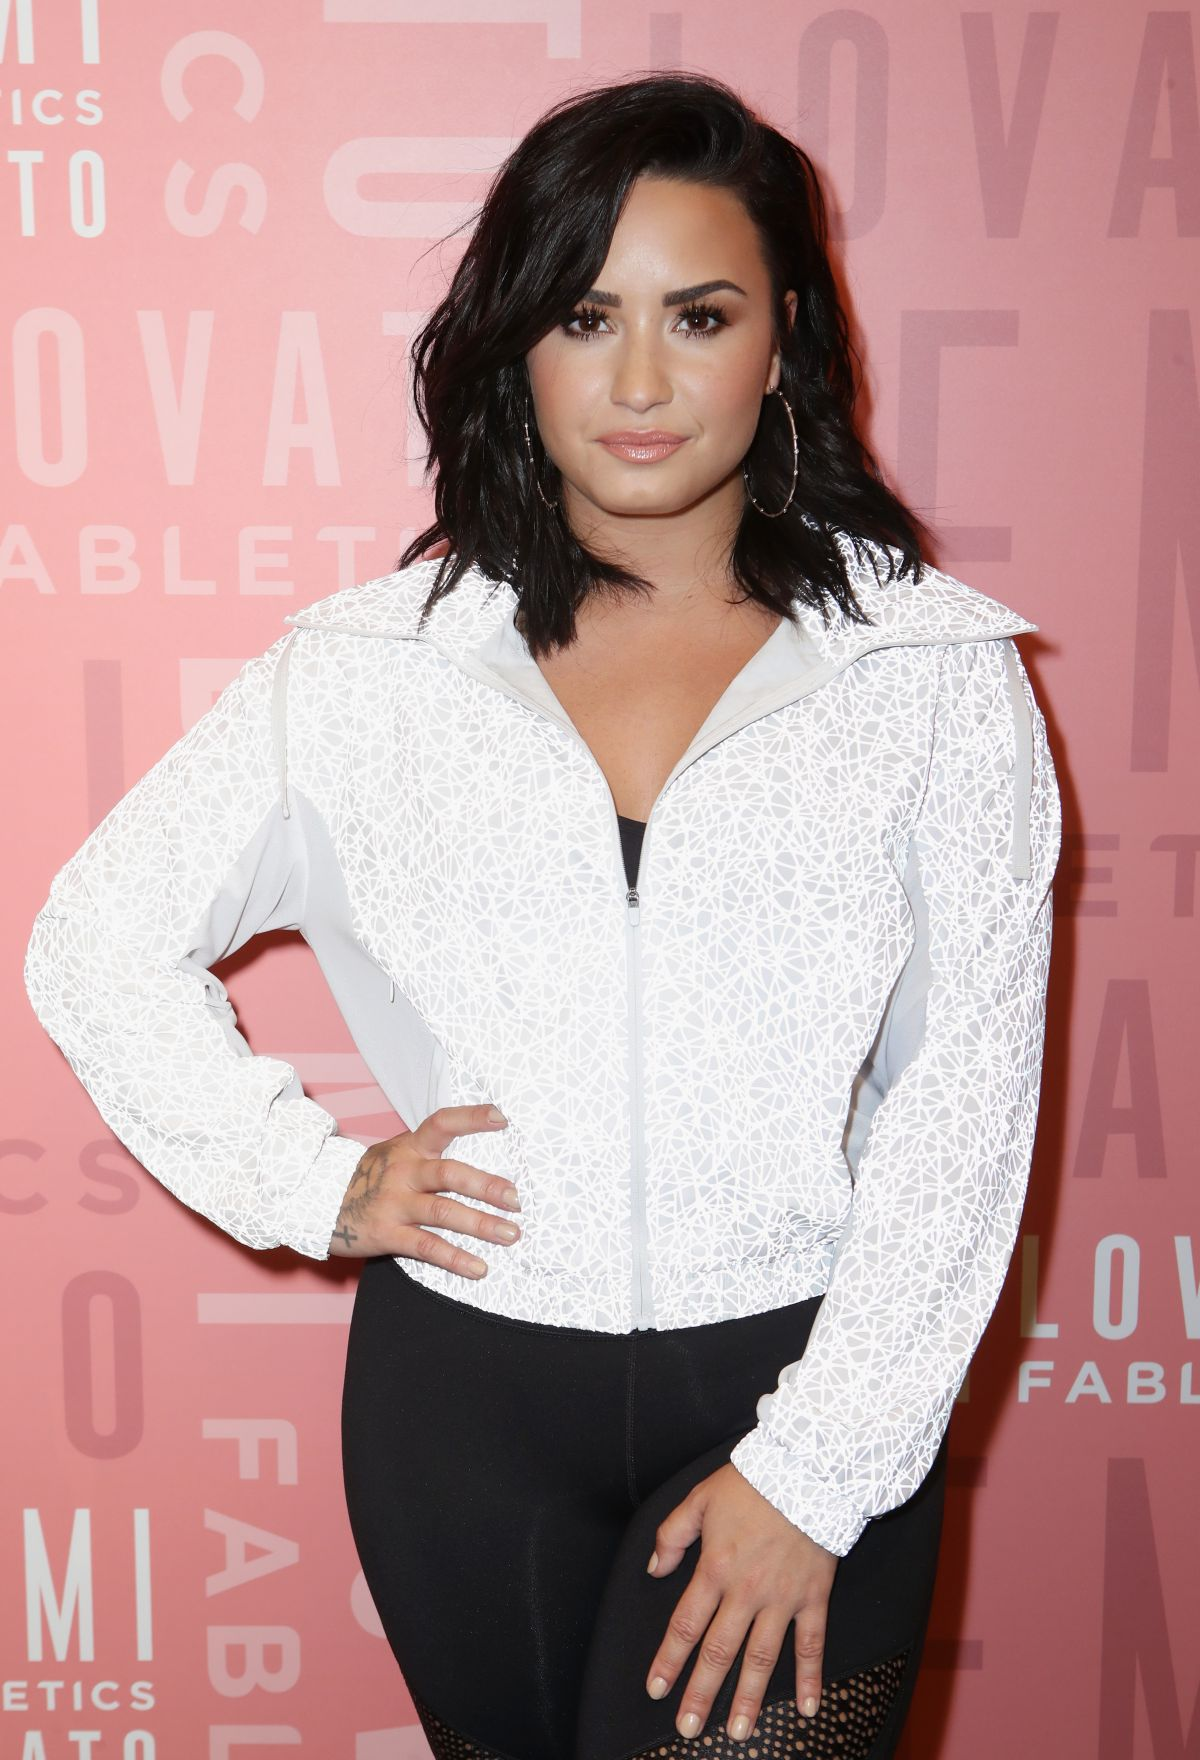 5576a7b7c92c8 DEMI LOVATO at Fabletics Event in Westfield Topanga 05 18 2018